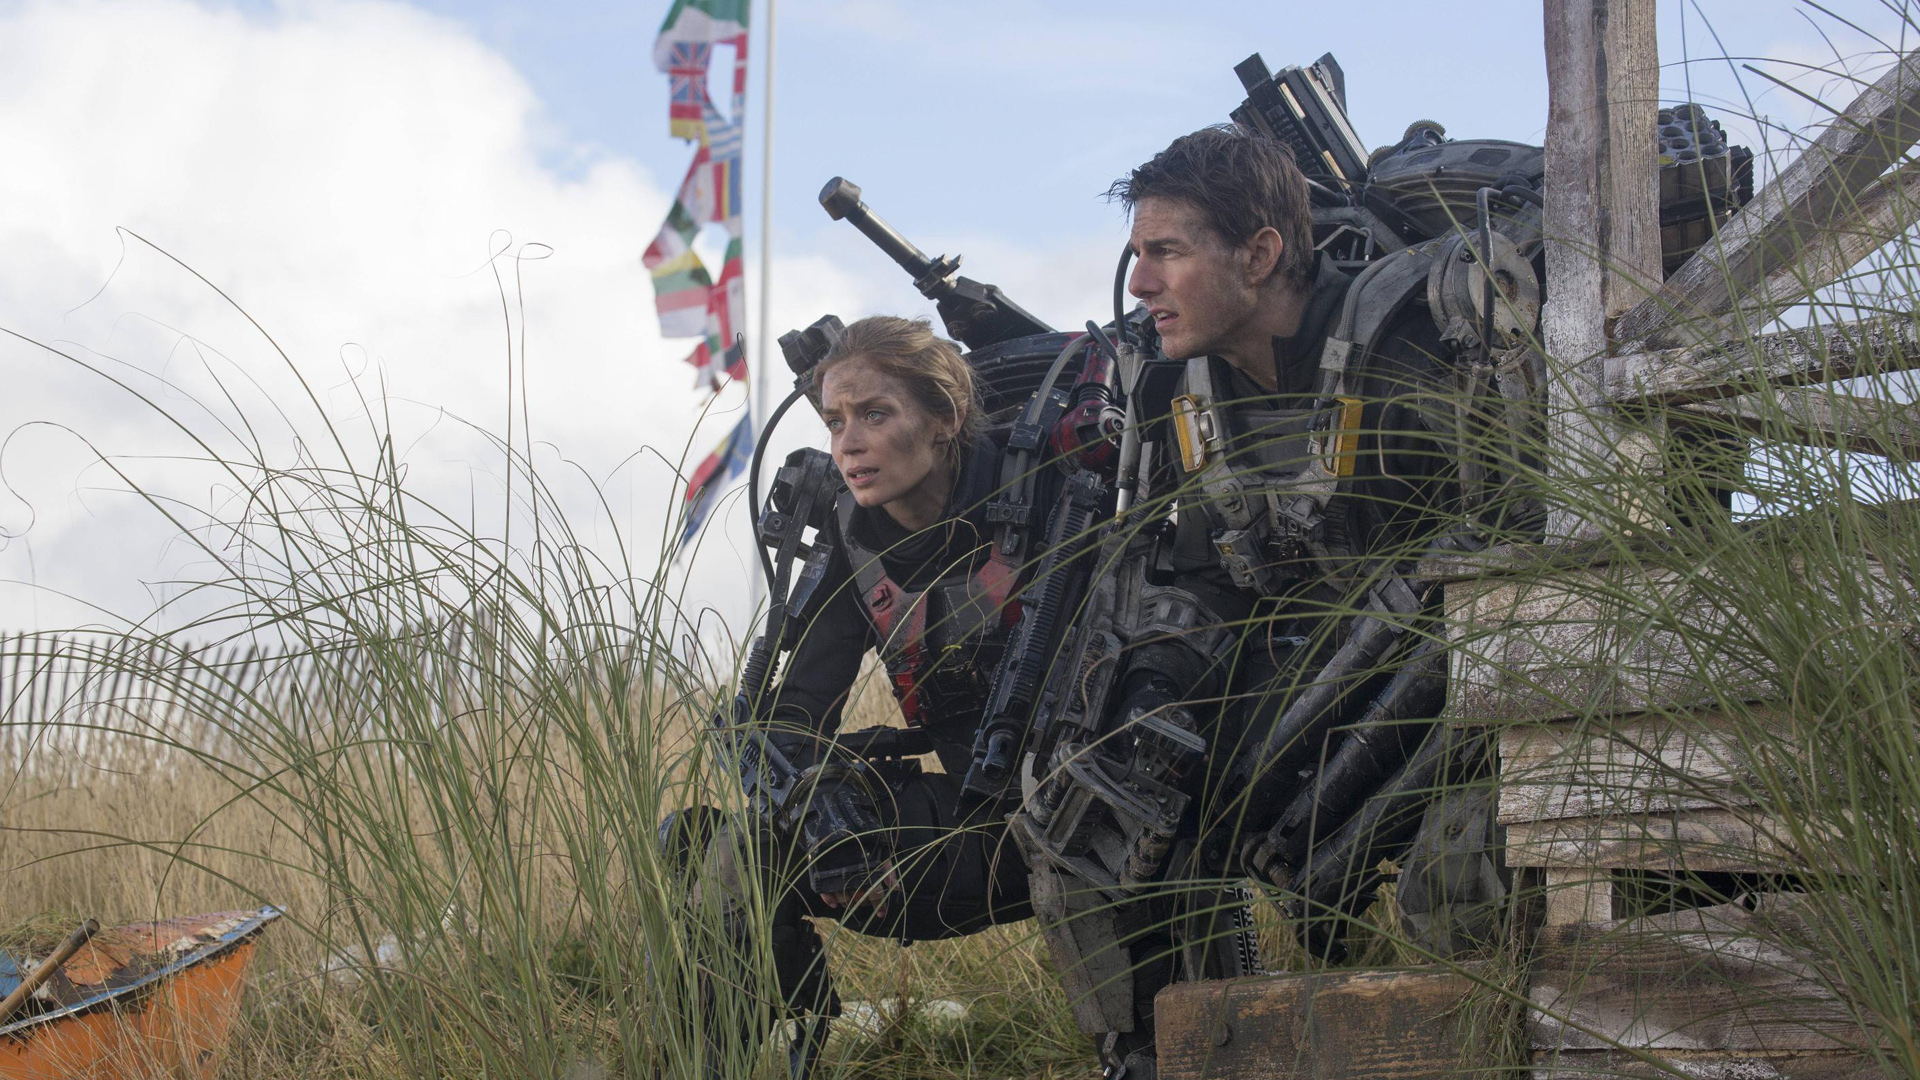 Emily Blunt and Tom Cruise star in 'Edge of Tomorrow'.